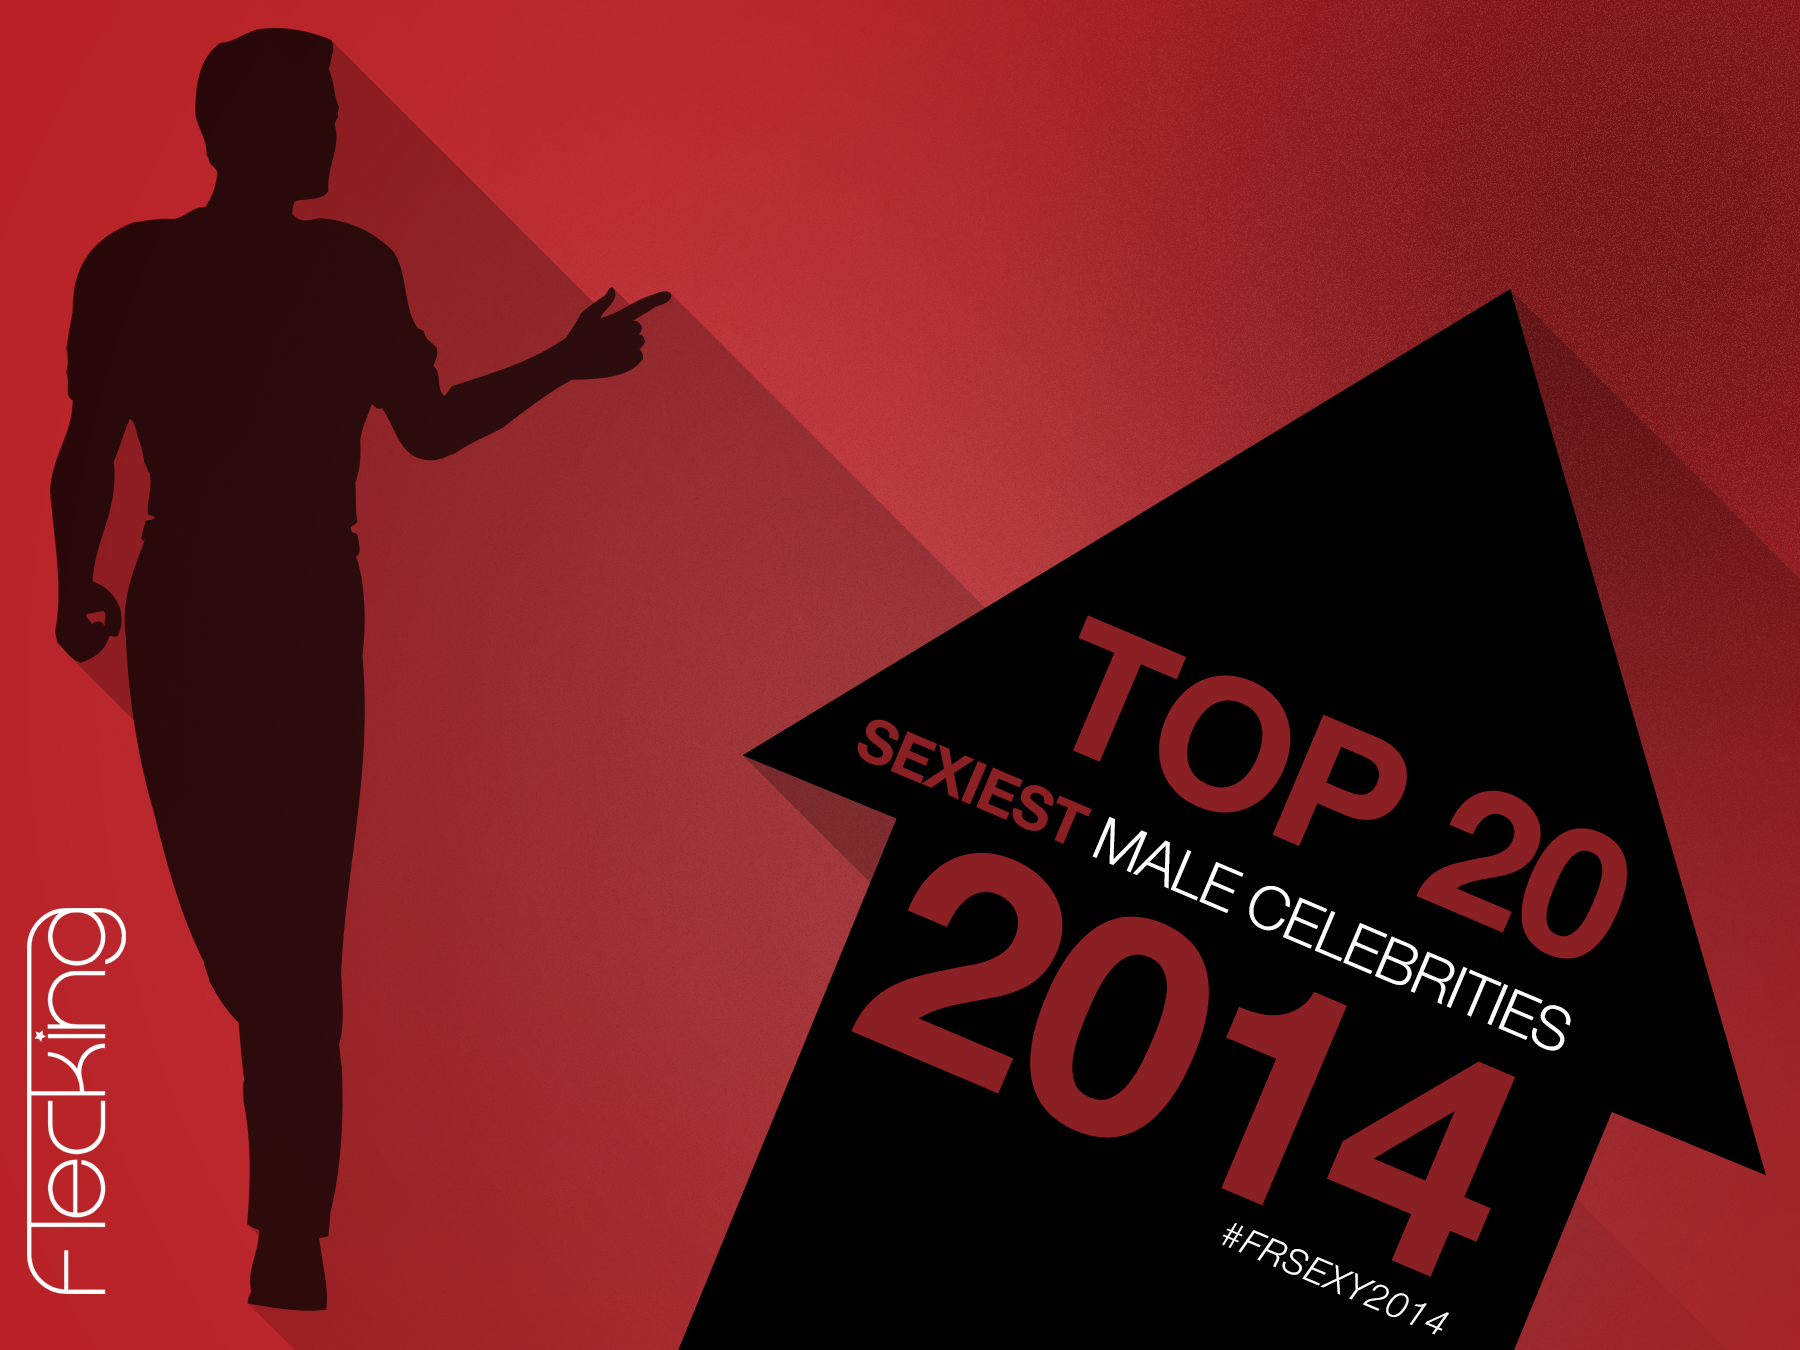 Top 20 Sexiest Male Celebrities 2014